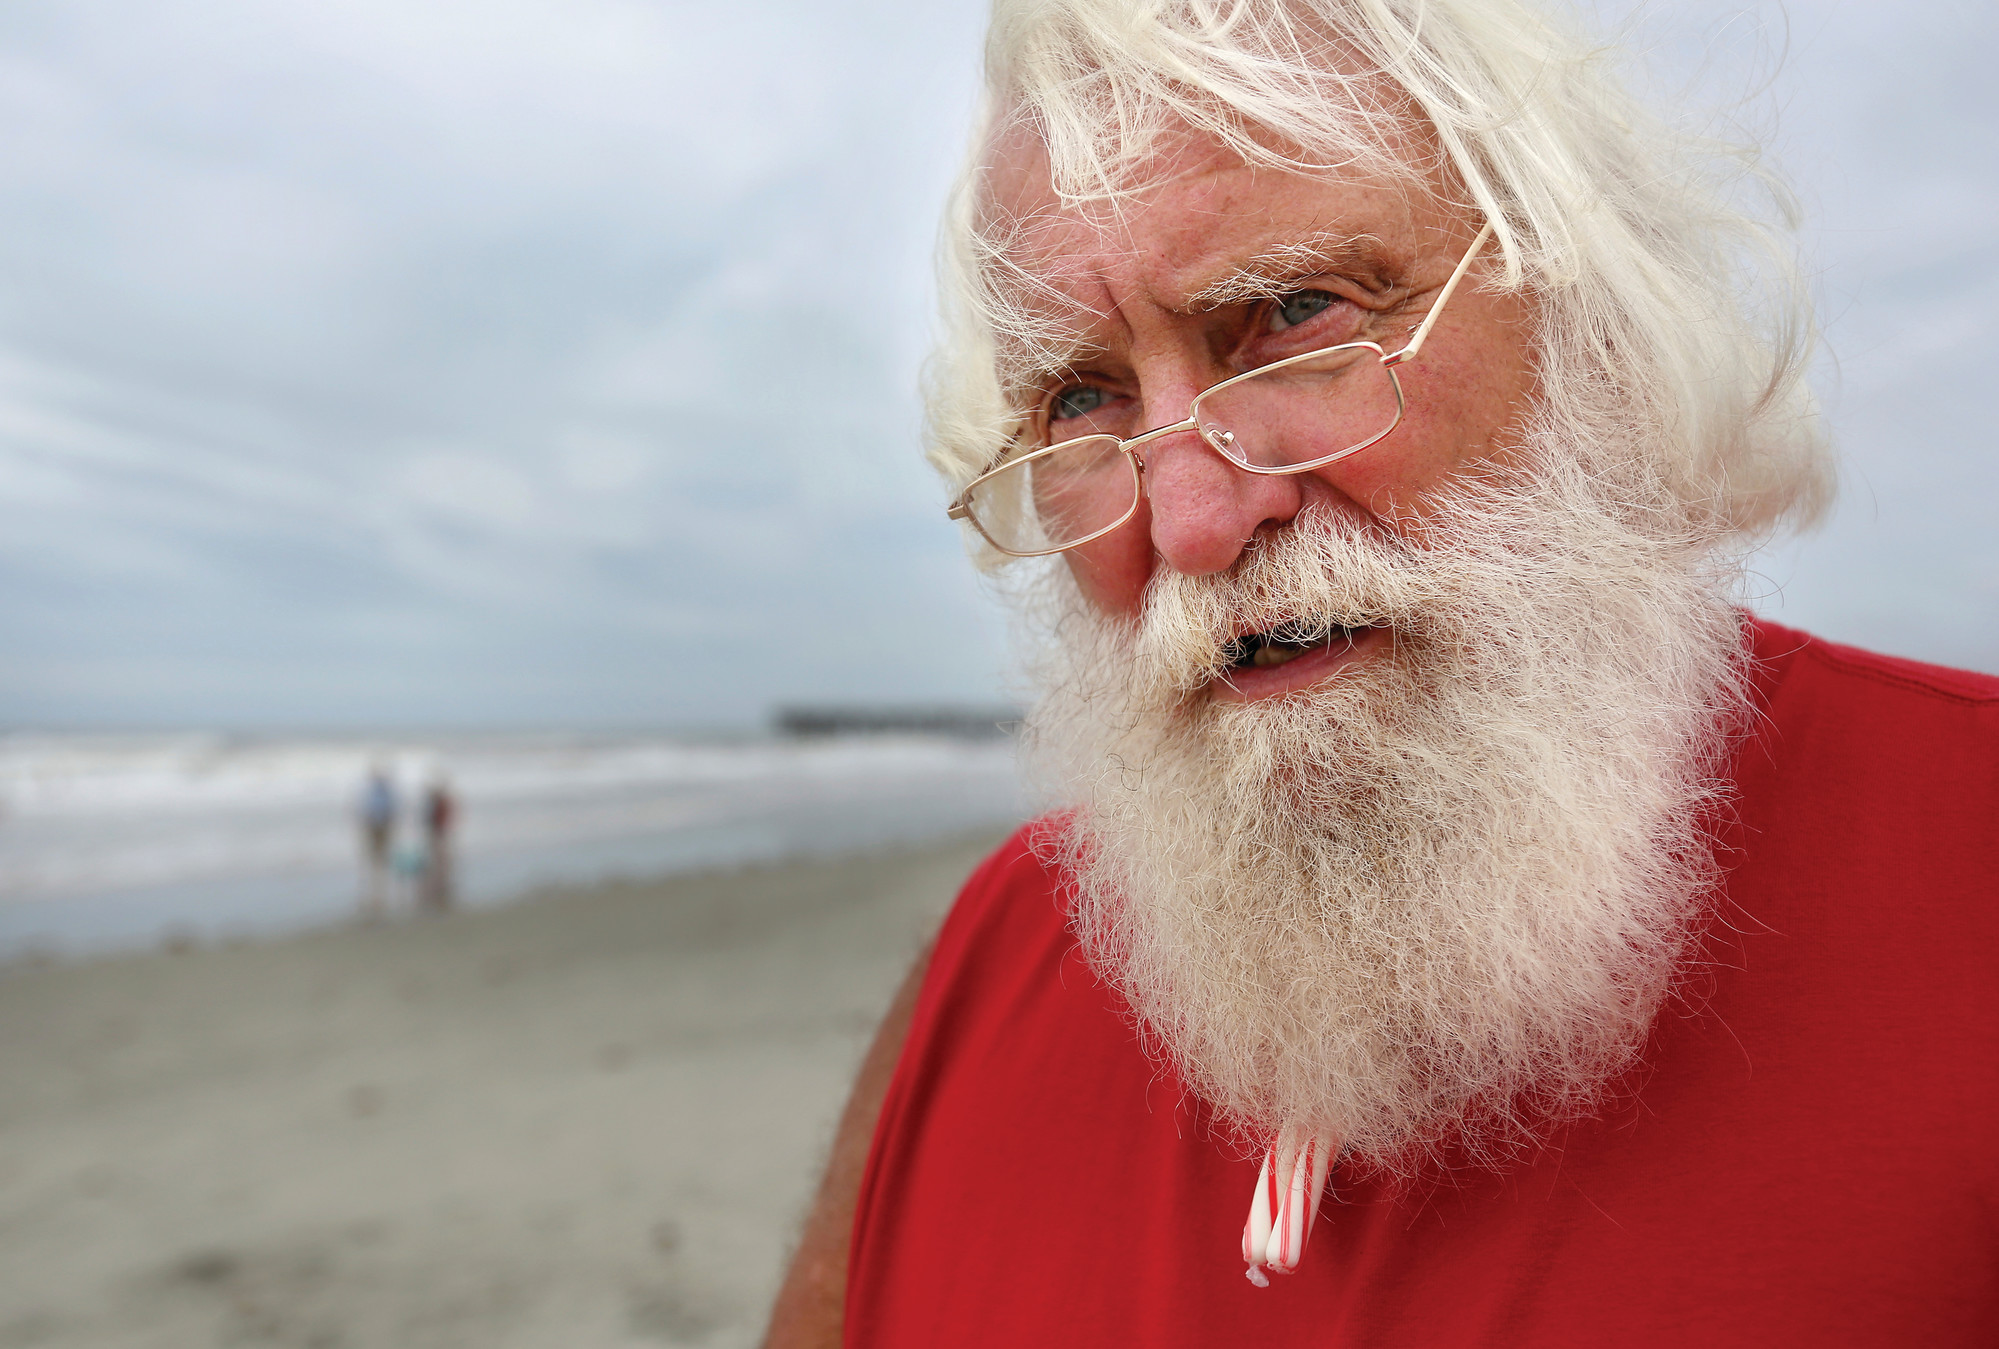 Howard Hogue, also known as Beach Santa, pauses on the beach on the Isle of Palms.